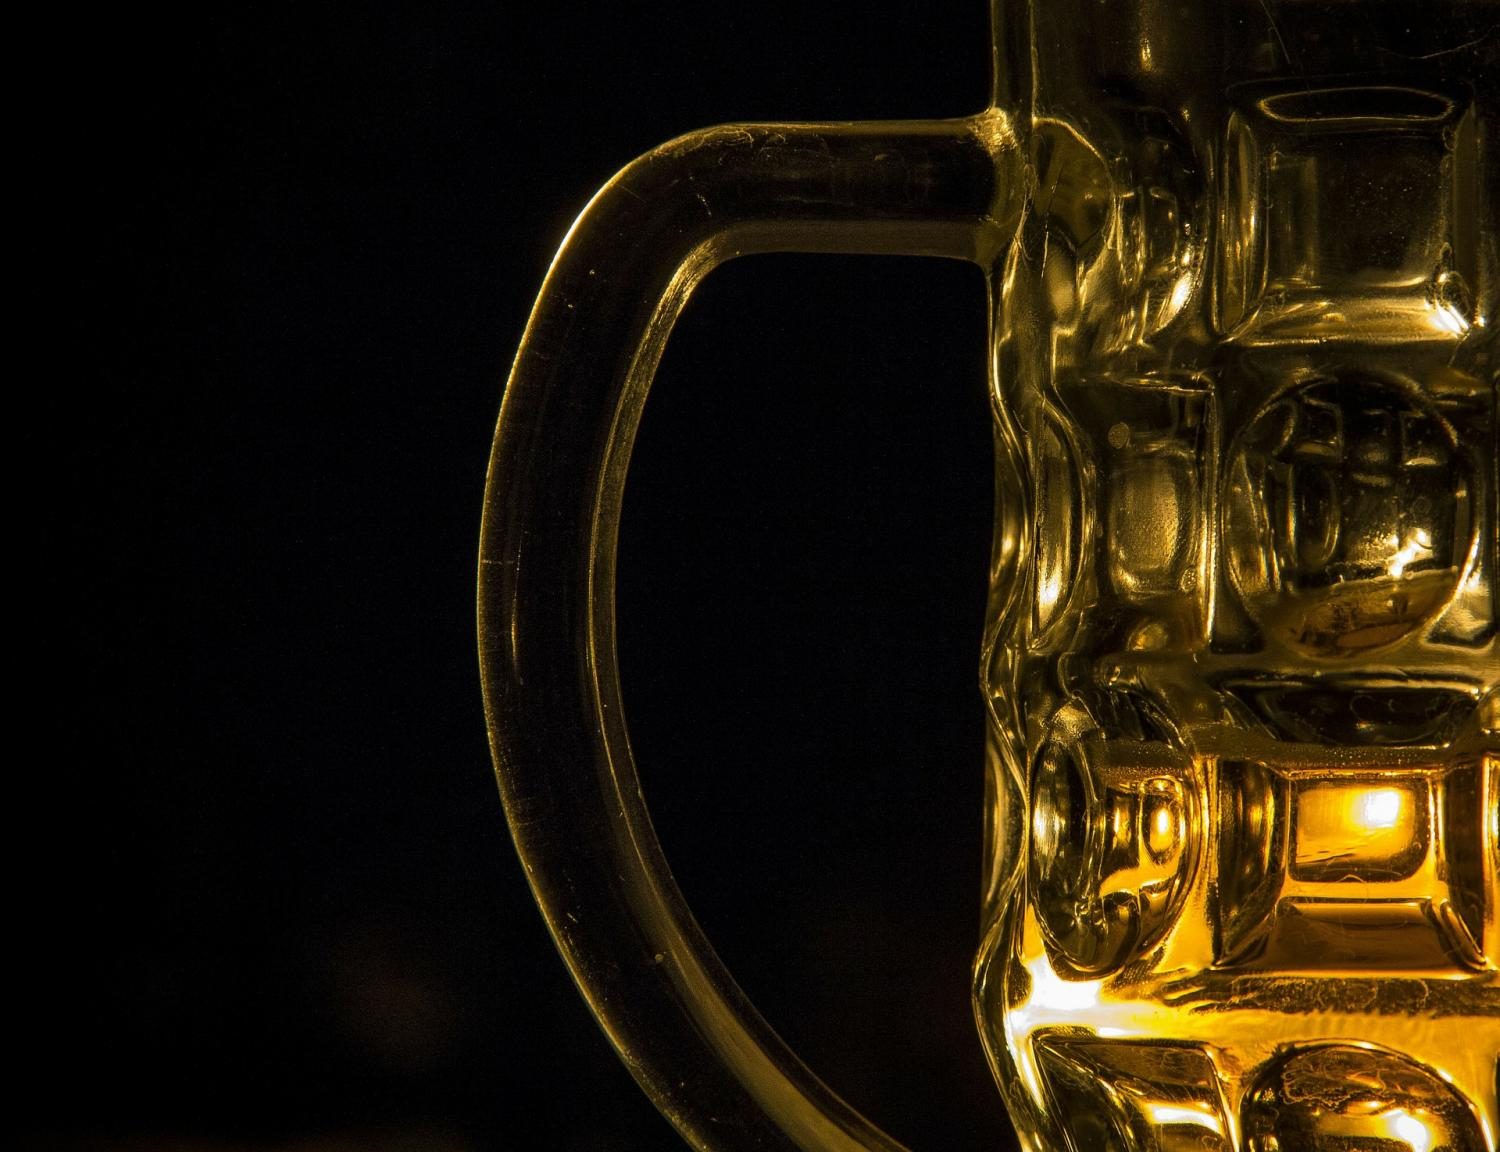 Alcohol Abuse Among Americans on the Rise